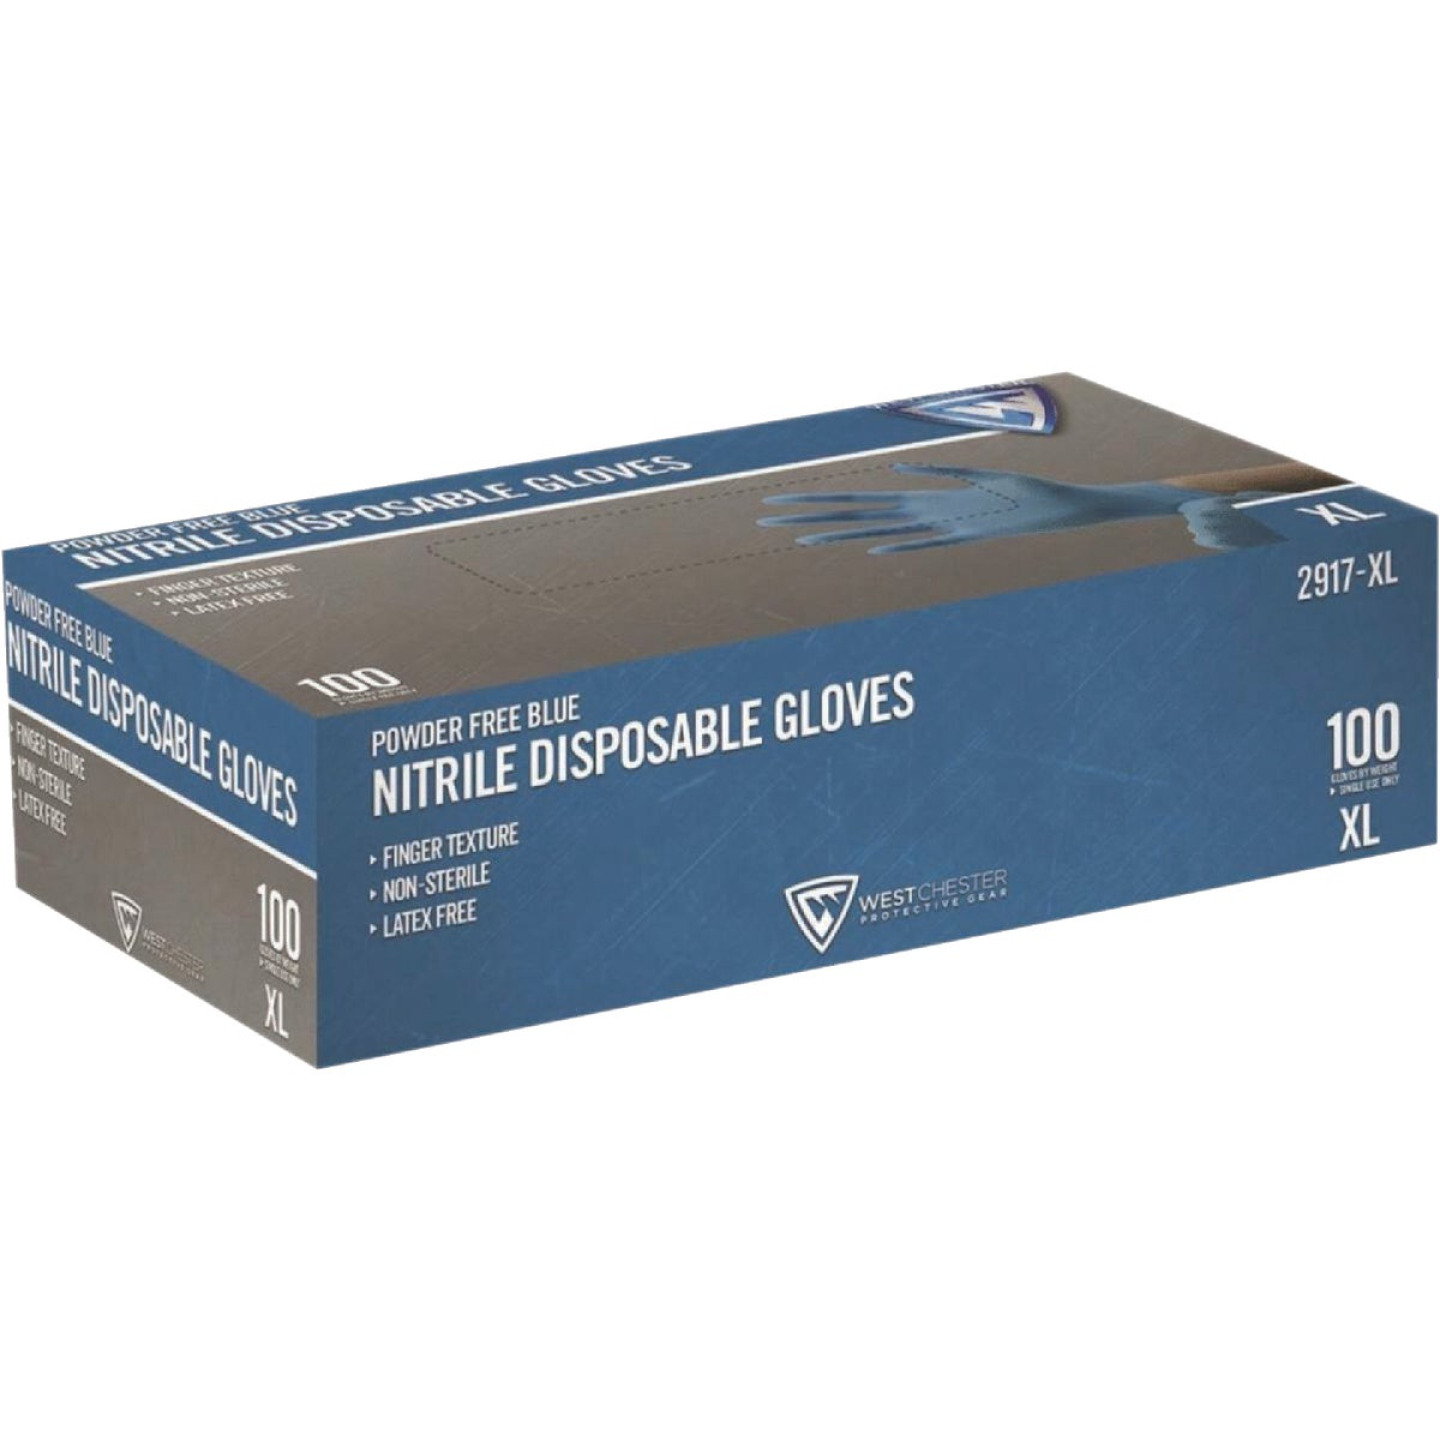 West Chester Protective Gear Large Nitrile Industrial Grade Disposable Glove (100-Pack) Image 2